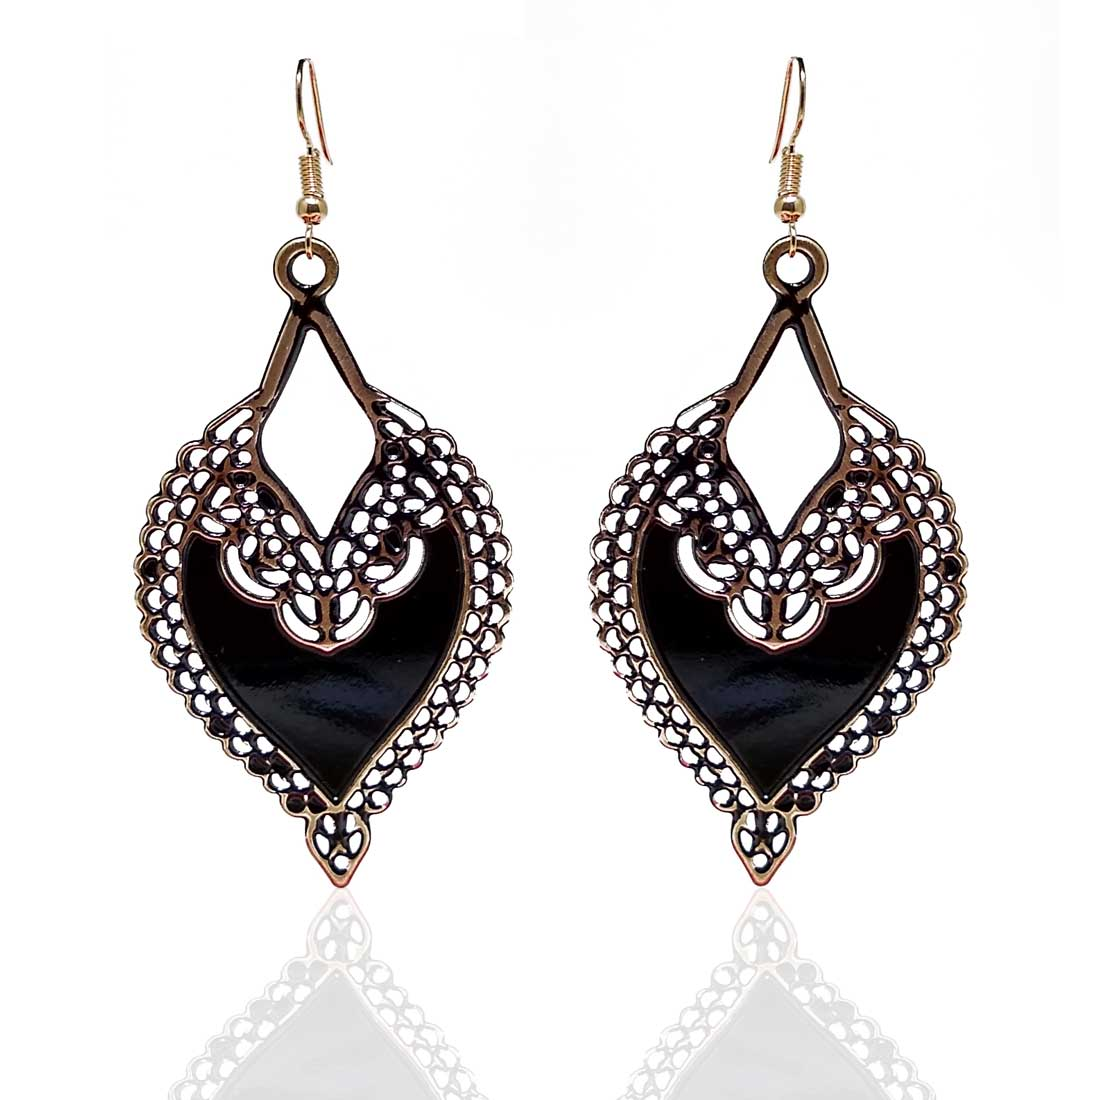 Anokhi ADA Dangle and Drop Earrings for Girls and Women (One Pair of Earrings, Black) -AP-03